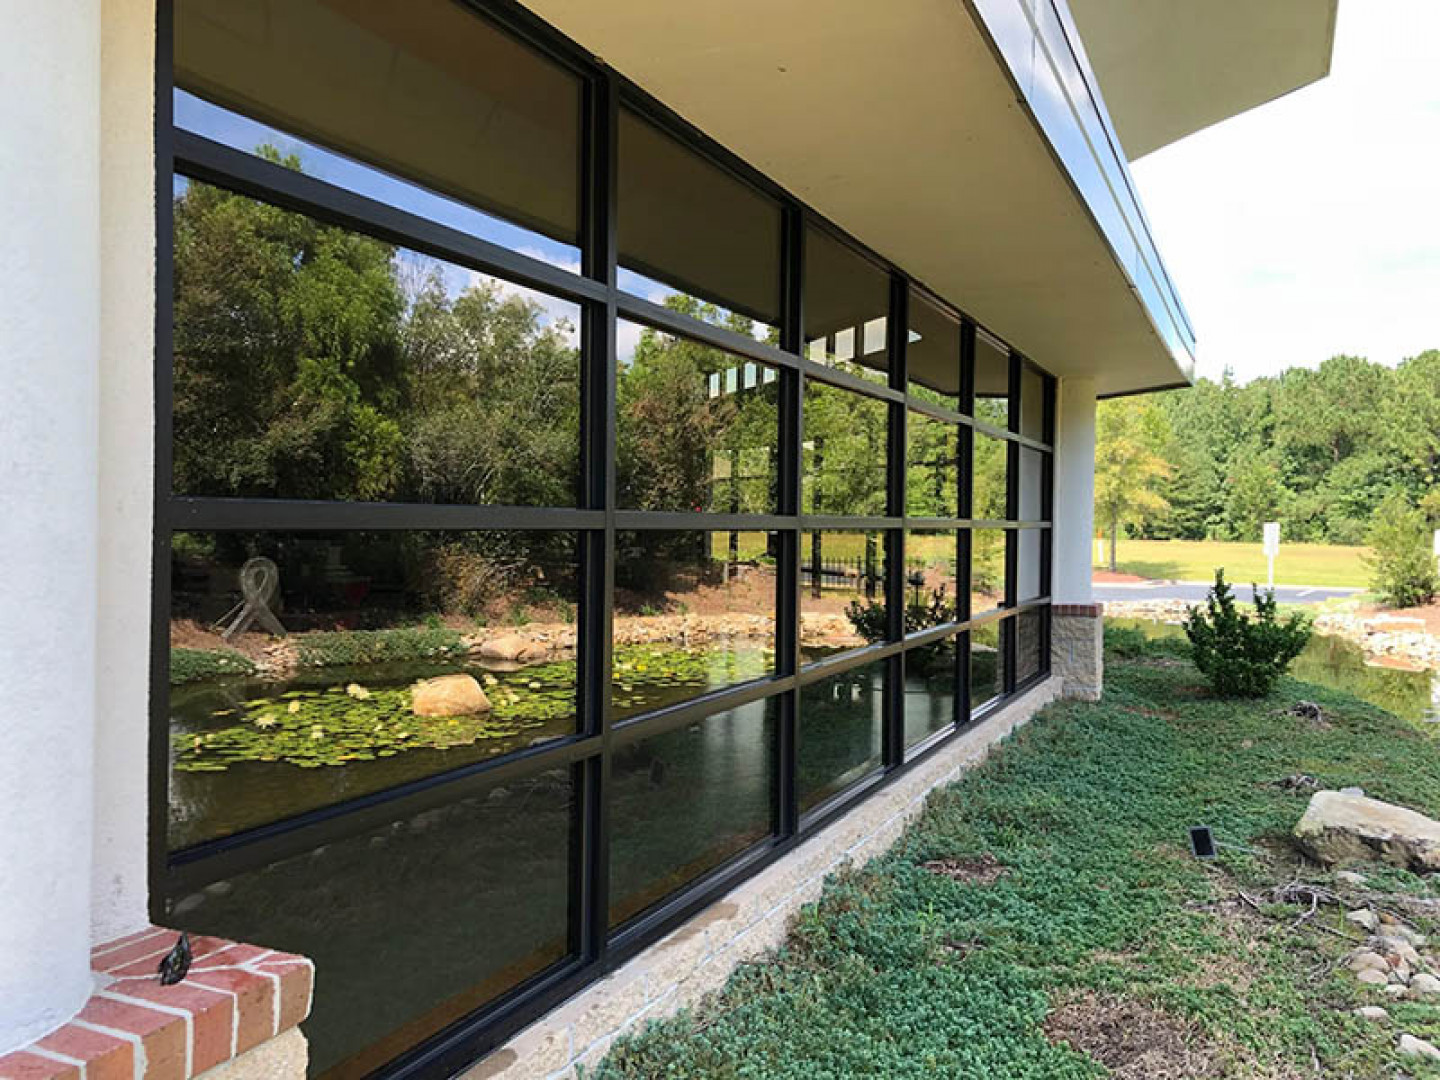 window cleaning services emerald isle nc